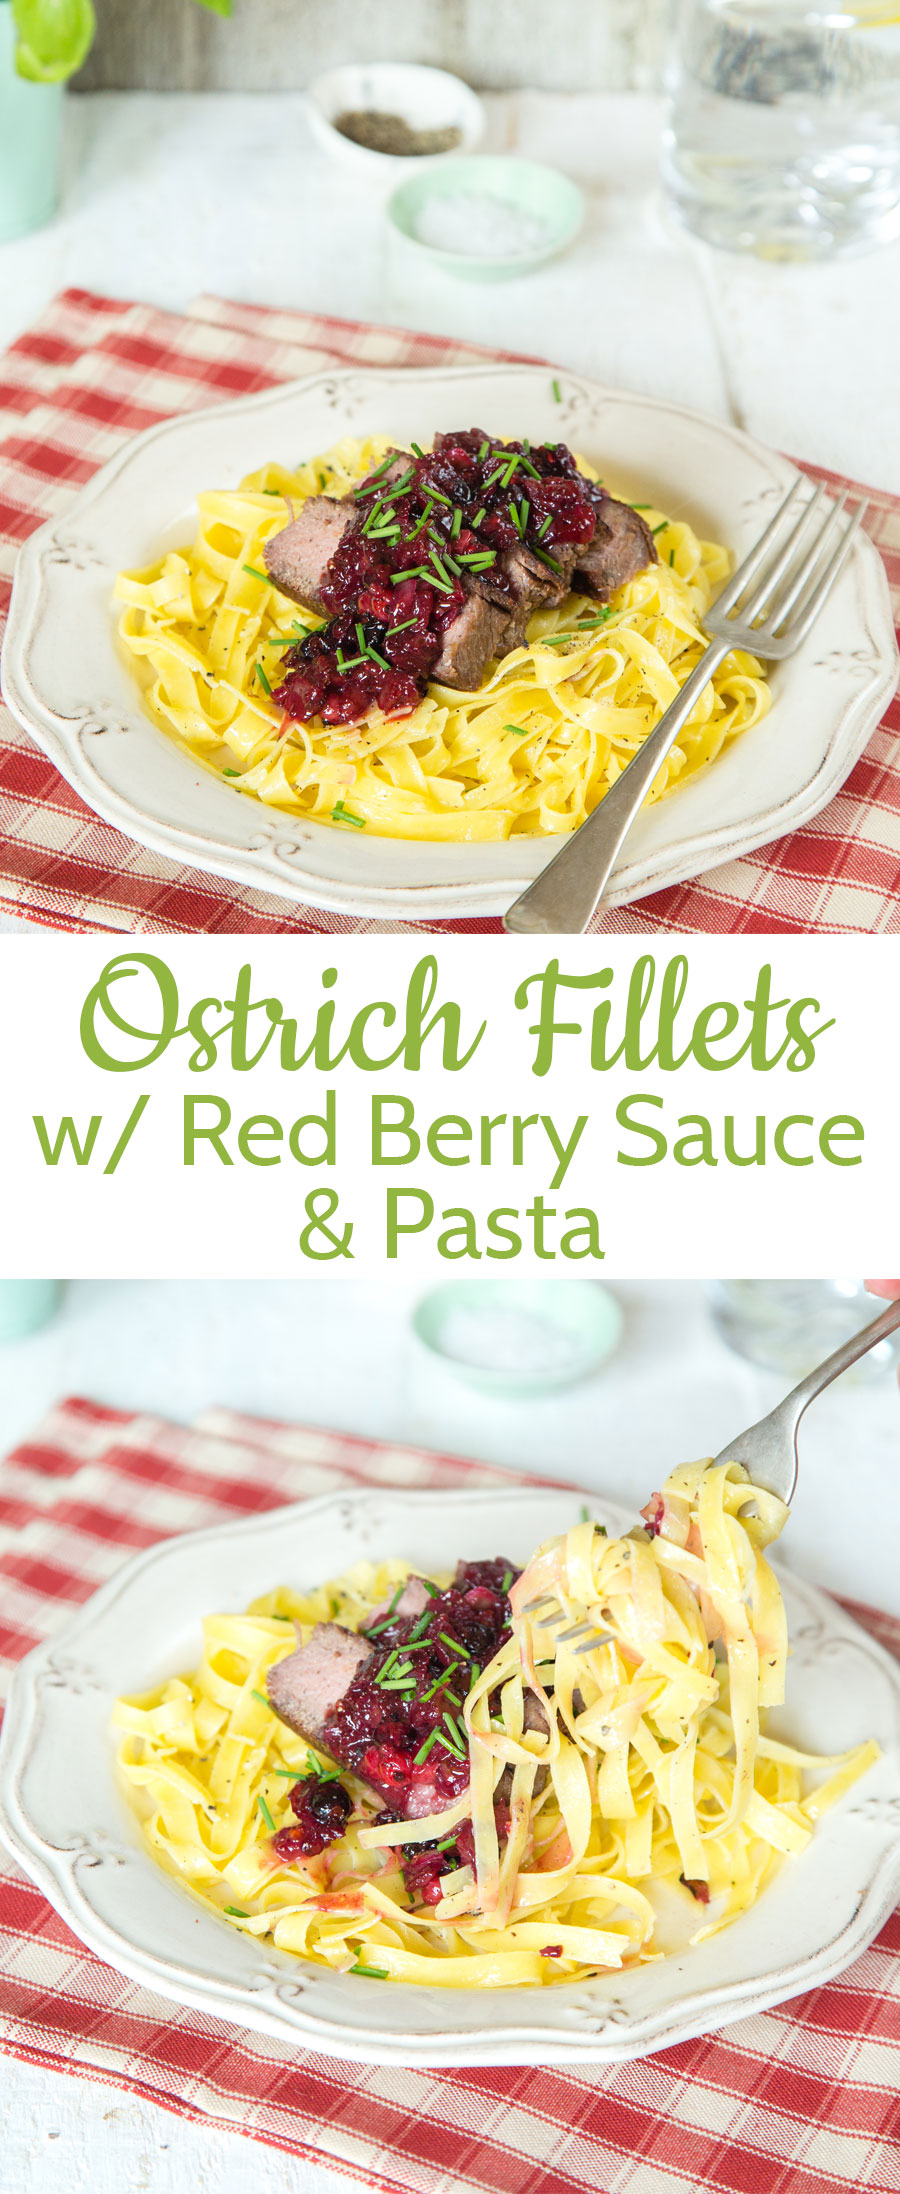 Fresh pasta tossed in butter topped with ostrich fillets and a red wine & berry sauce.  Perfect for a dinner party, but quick enough for a mid week supper.